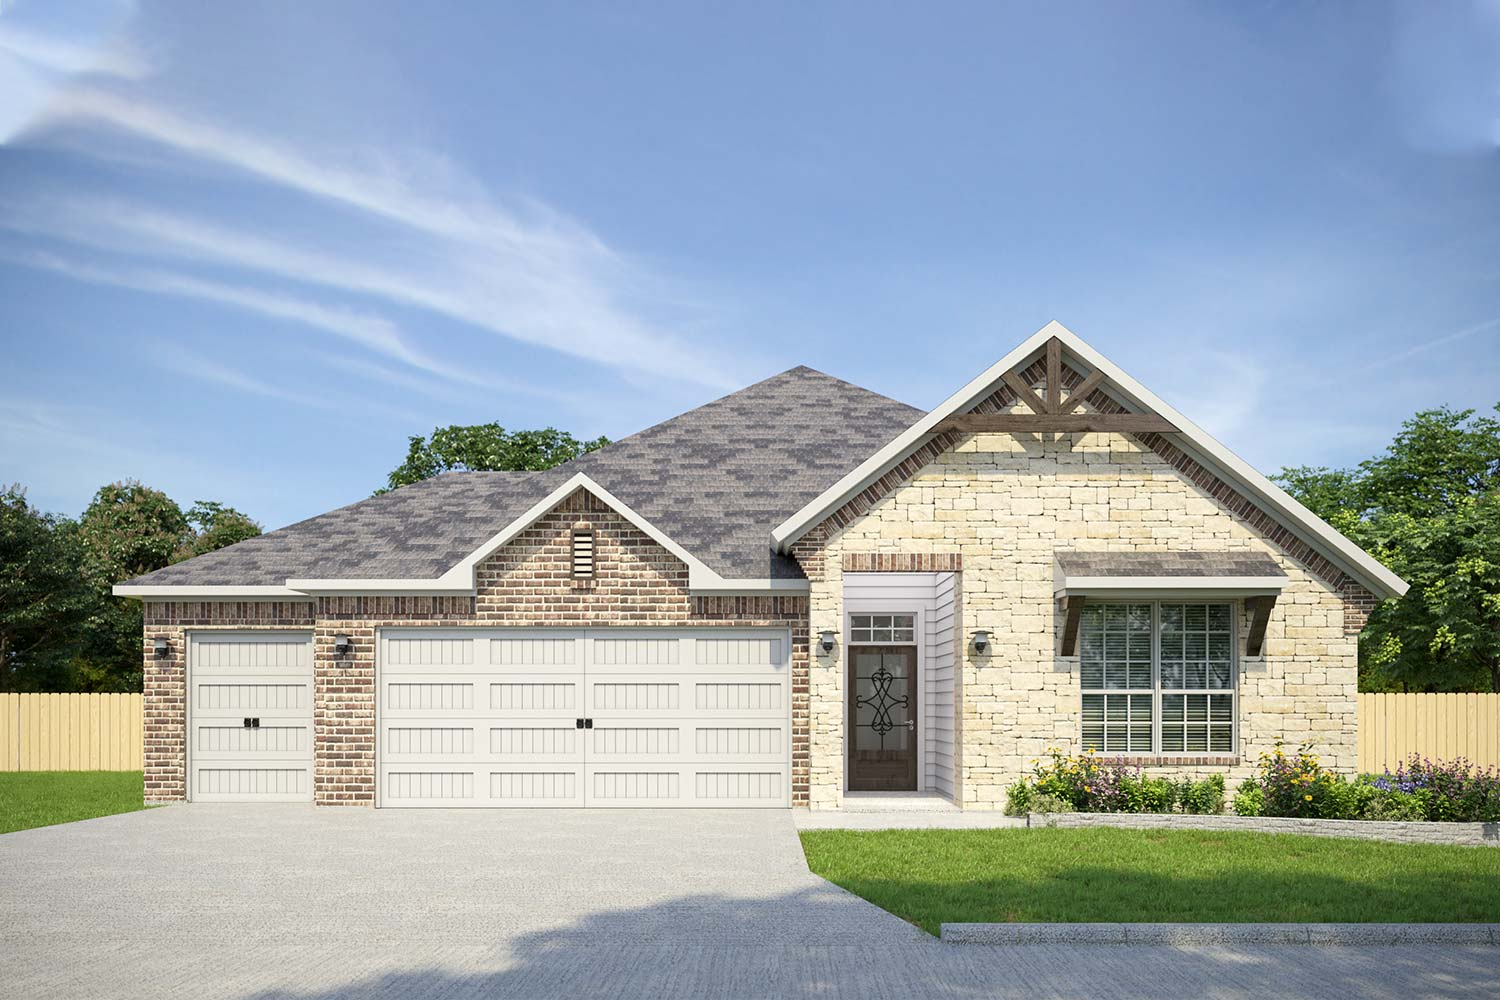 New Homes for Sale in Belton, TX | 3137 Trinity Dr